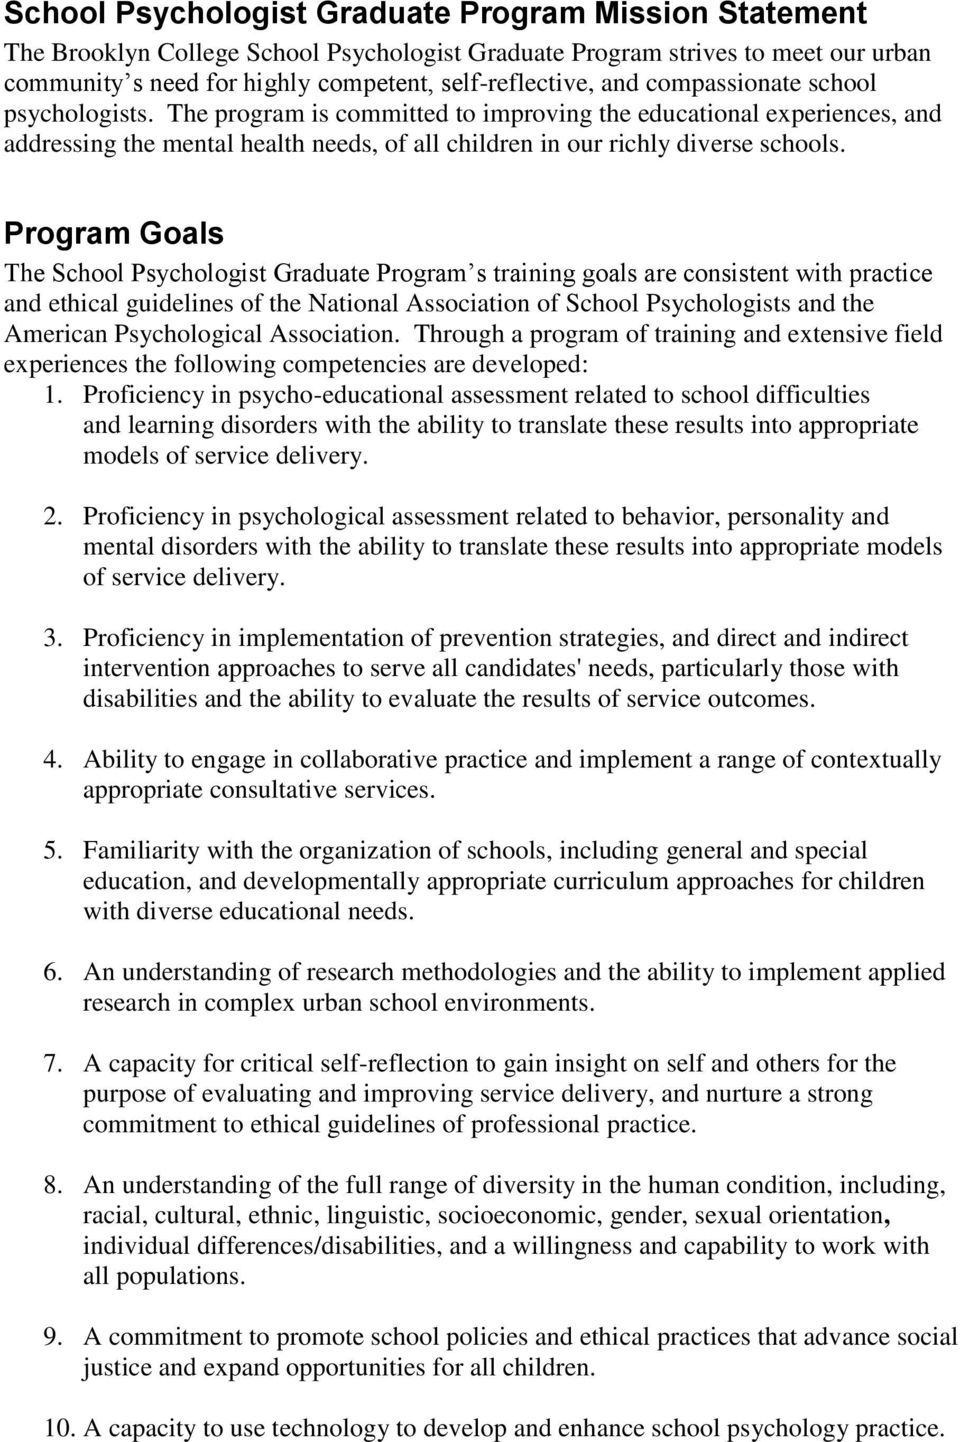 Program Goals The School Psychologist Graduate Program s training goals are consistent with practice and ethical guidelines of the National Association of School Psychologists and the American